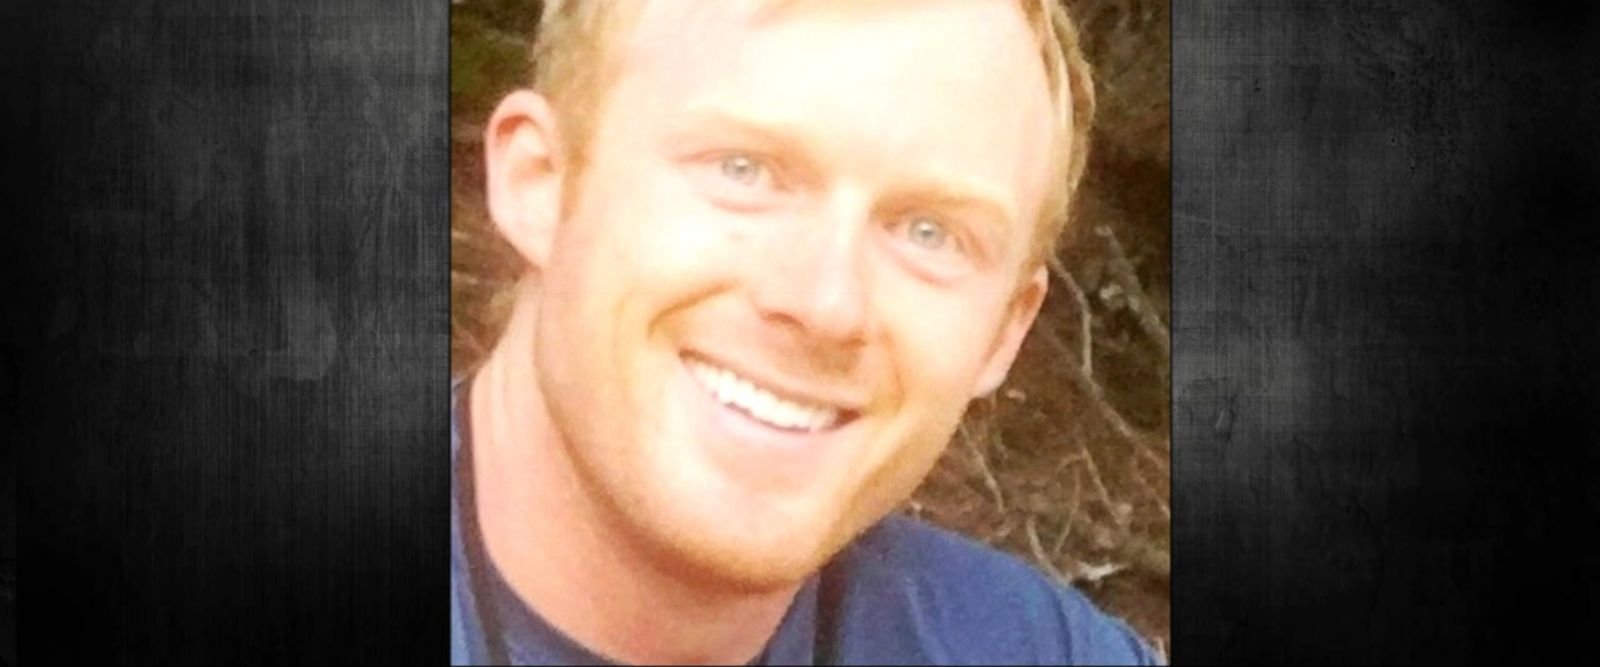 """A Navy SEAL who died during a parachute demonstration was identified today as Remington Peters, a 27-year-old """"expert"""" Naval parachutists who enlisted in 2008, according to the Navy."""